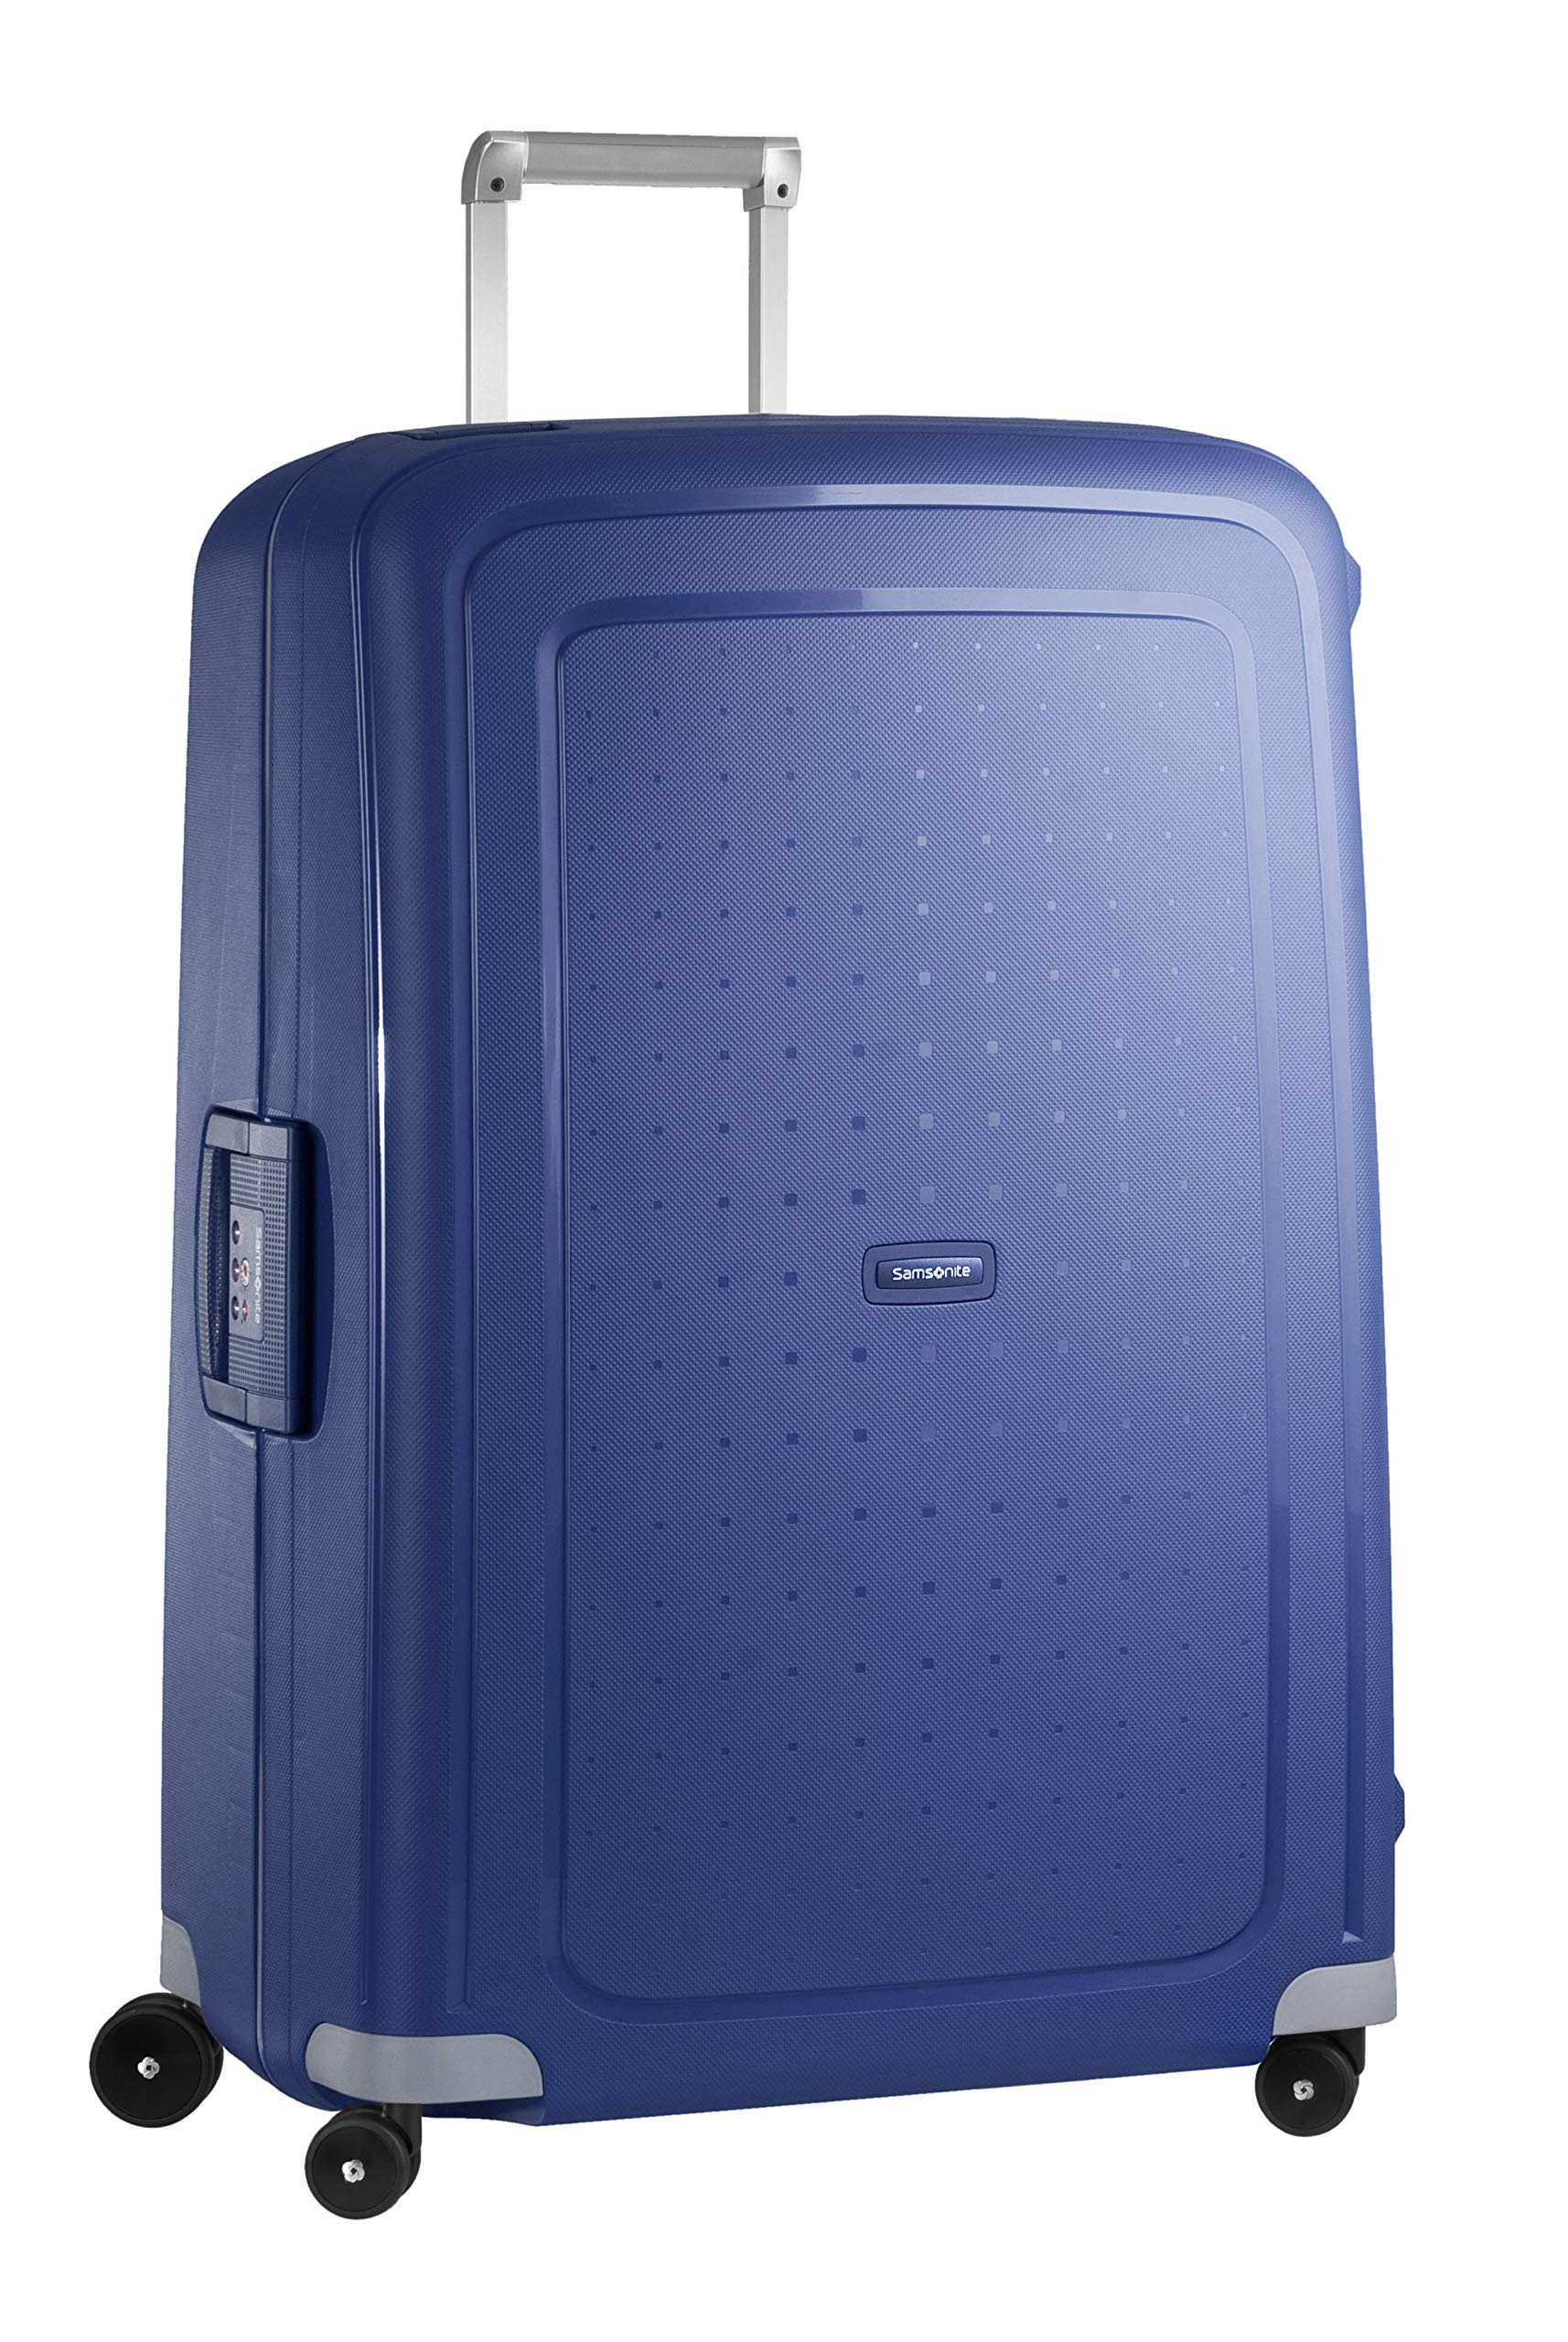 Samsonite Scure - Equipaje de mano, Azul (Dark Blue), XL (81cm-138L)